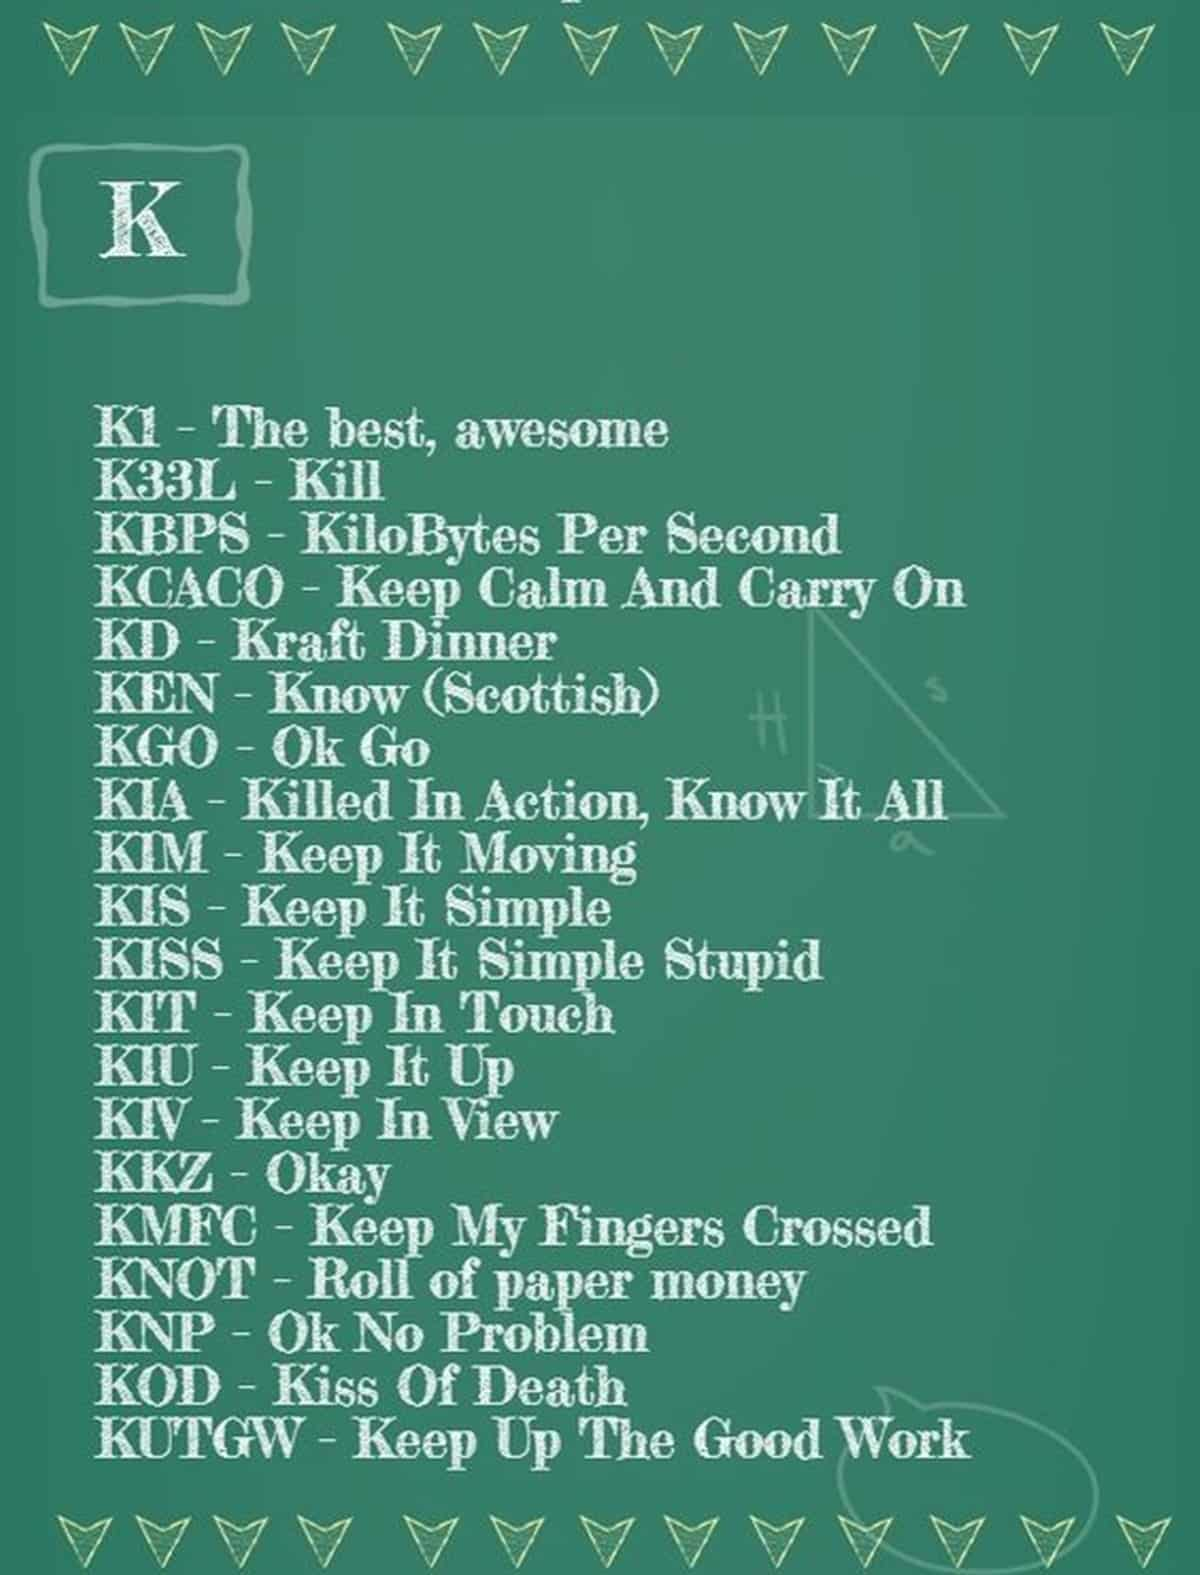 Trendy Internet Slang Words and Acronyms